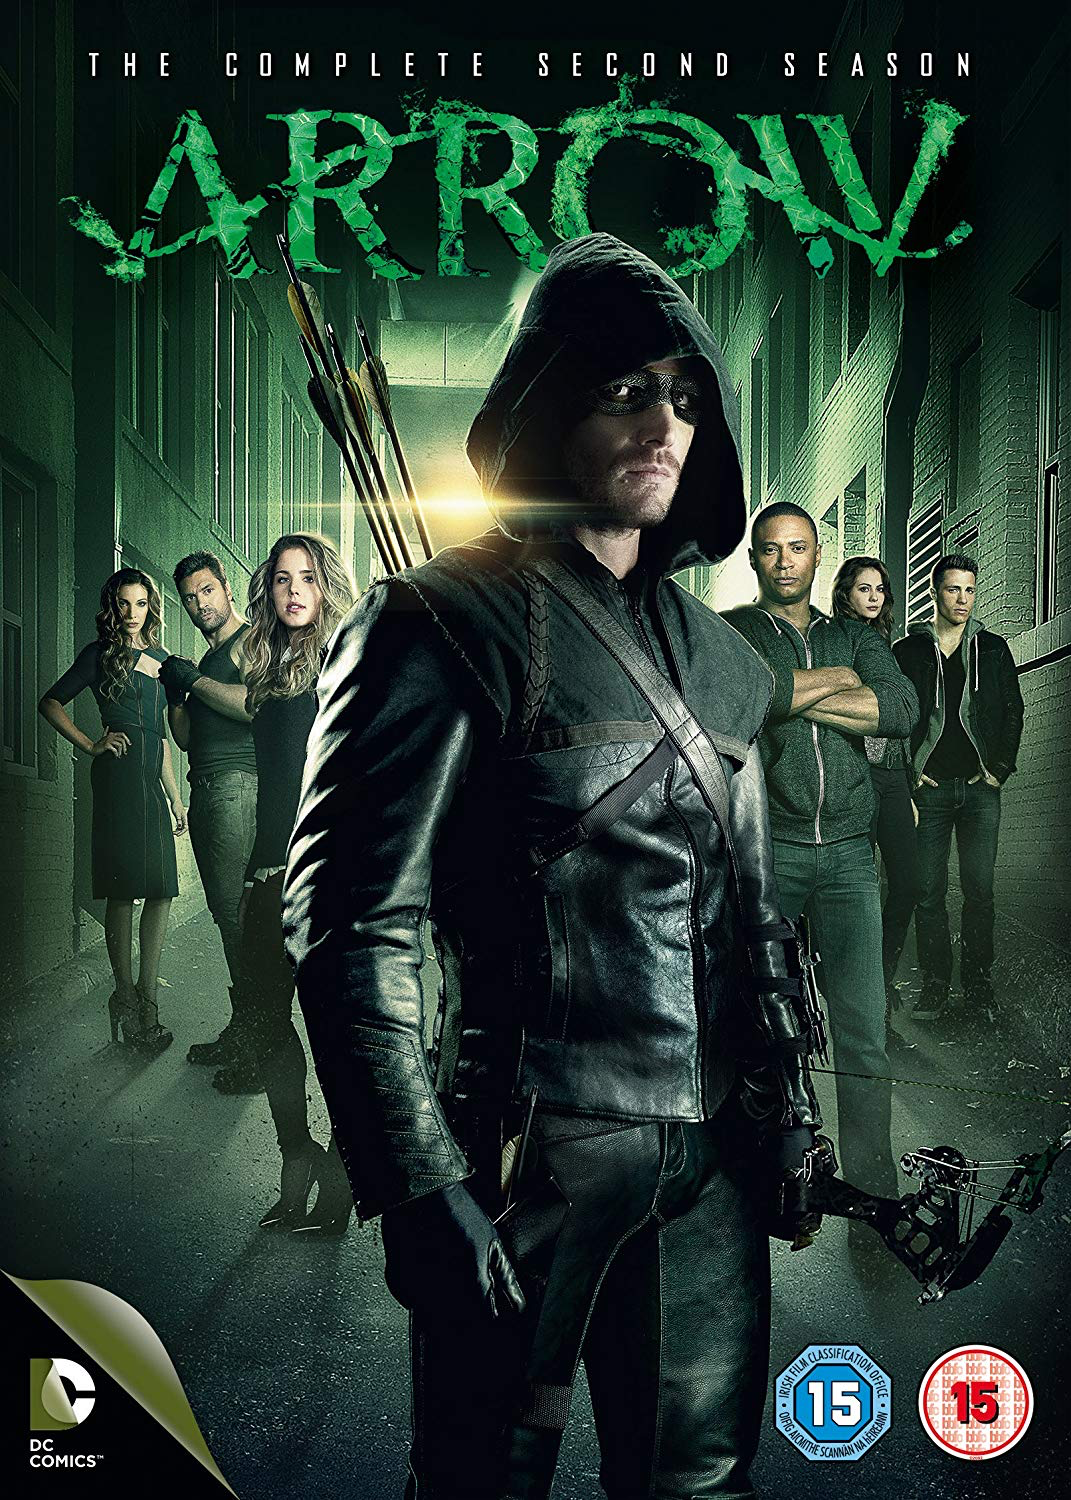 Arrow - The Complete Second Season region 2 cover.png